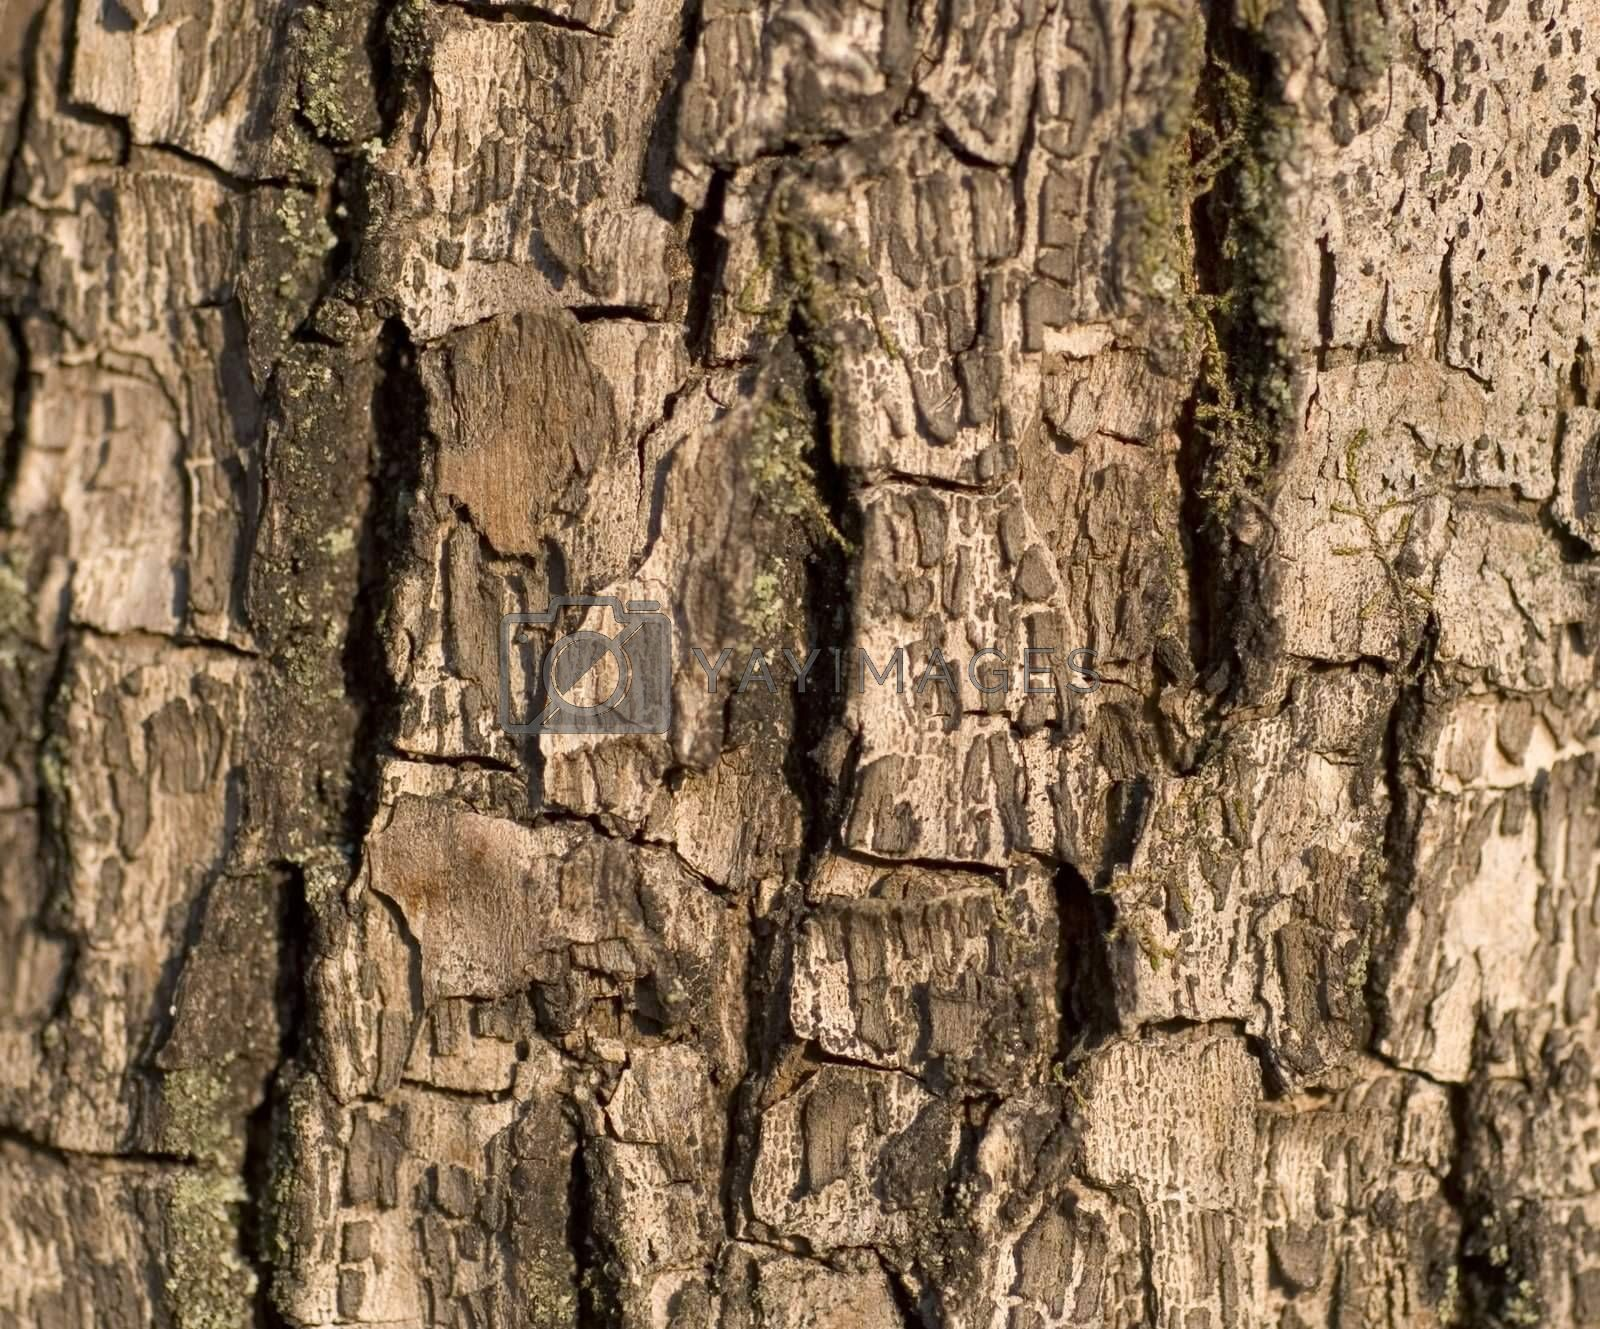 Textured close up of tree bark, brown with rough surface.